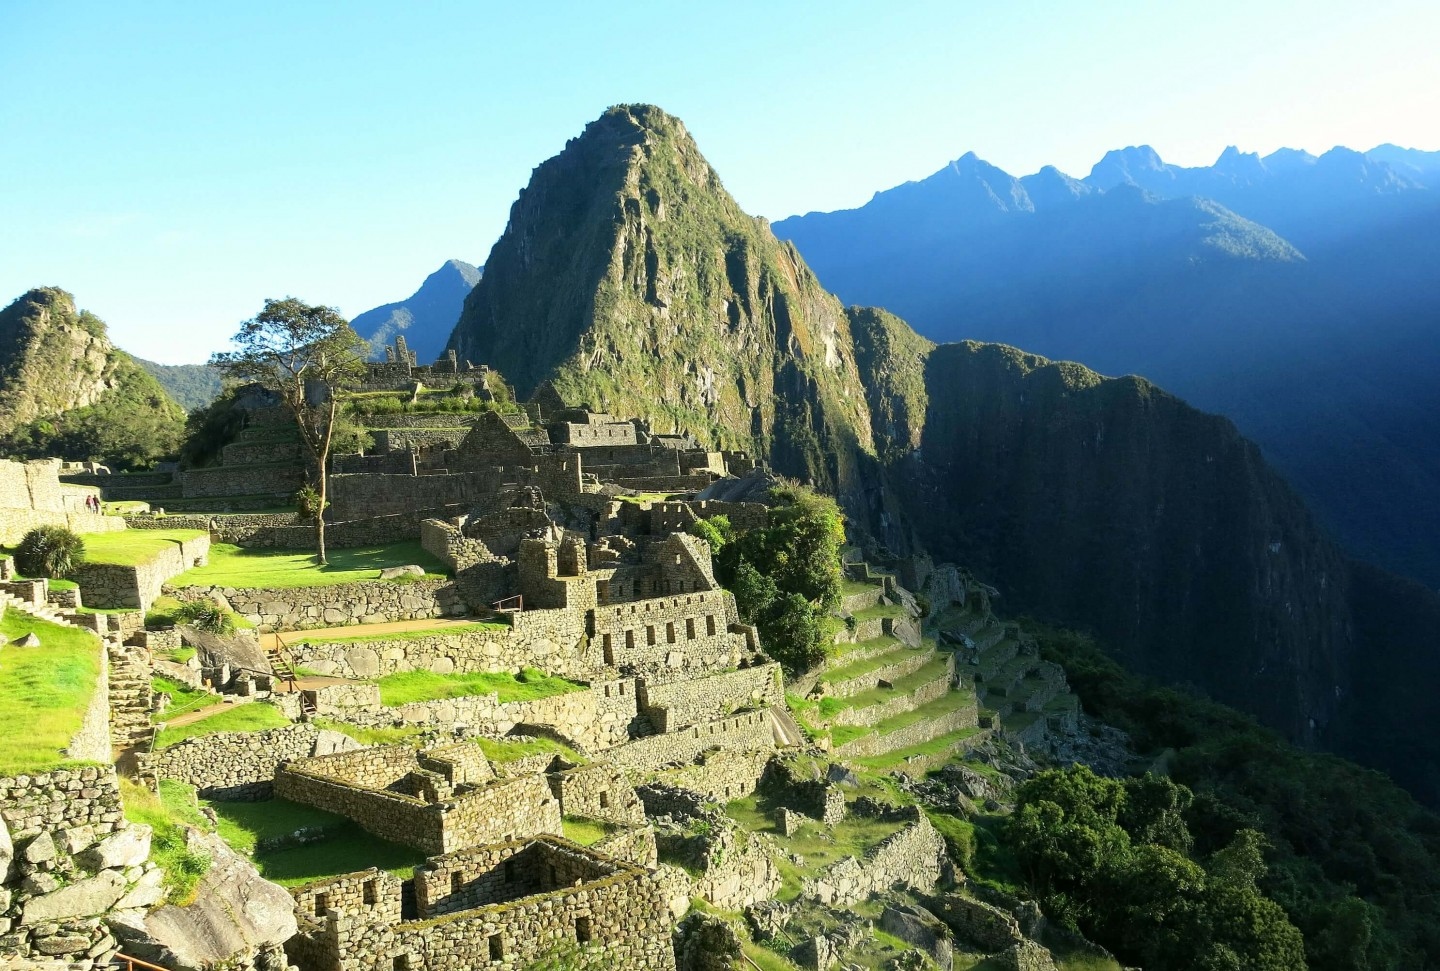 Reaching the top of Machu Picchu in time for sunrise. This was an amazing part of our 4 day trek!